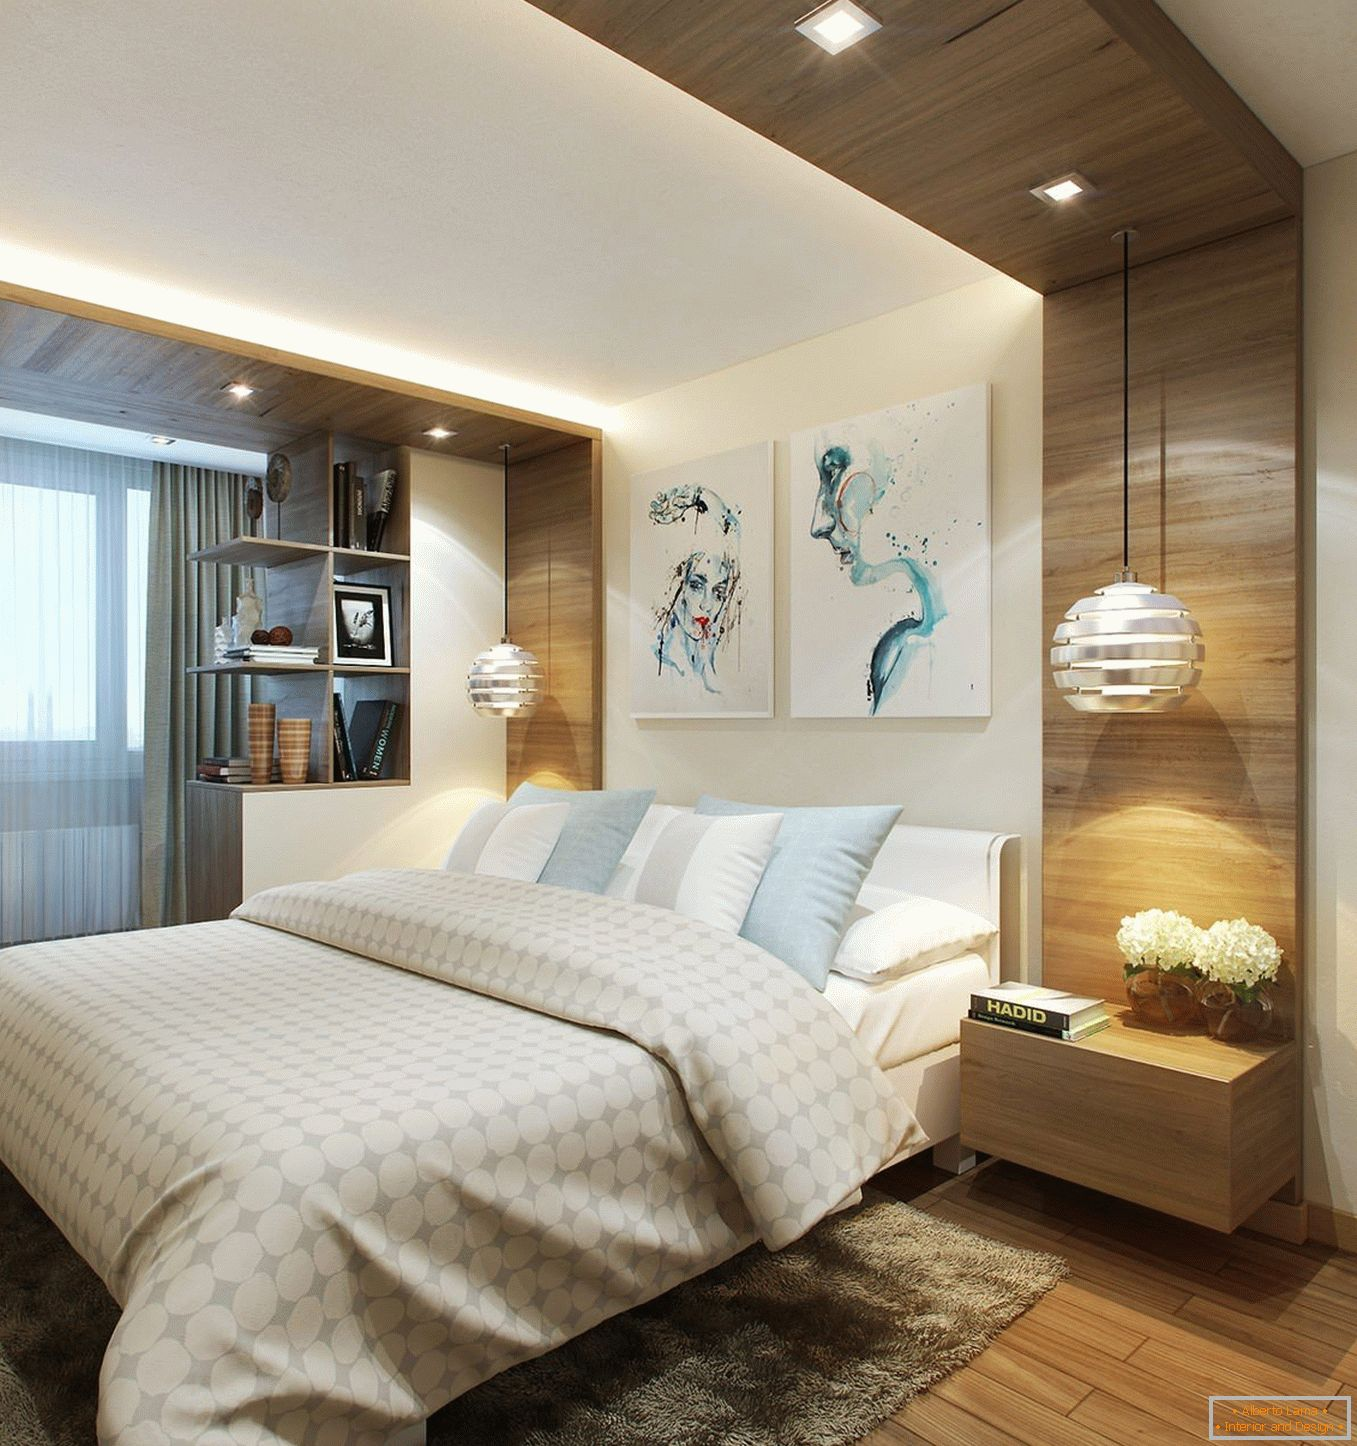 Bedroom combined with balcony